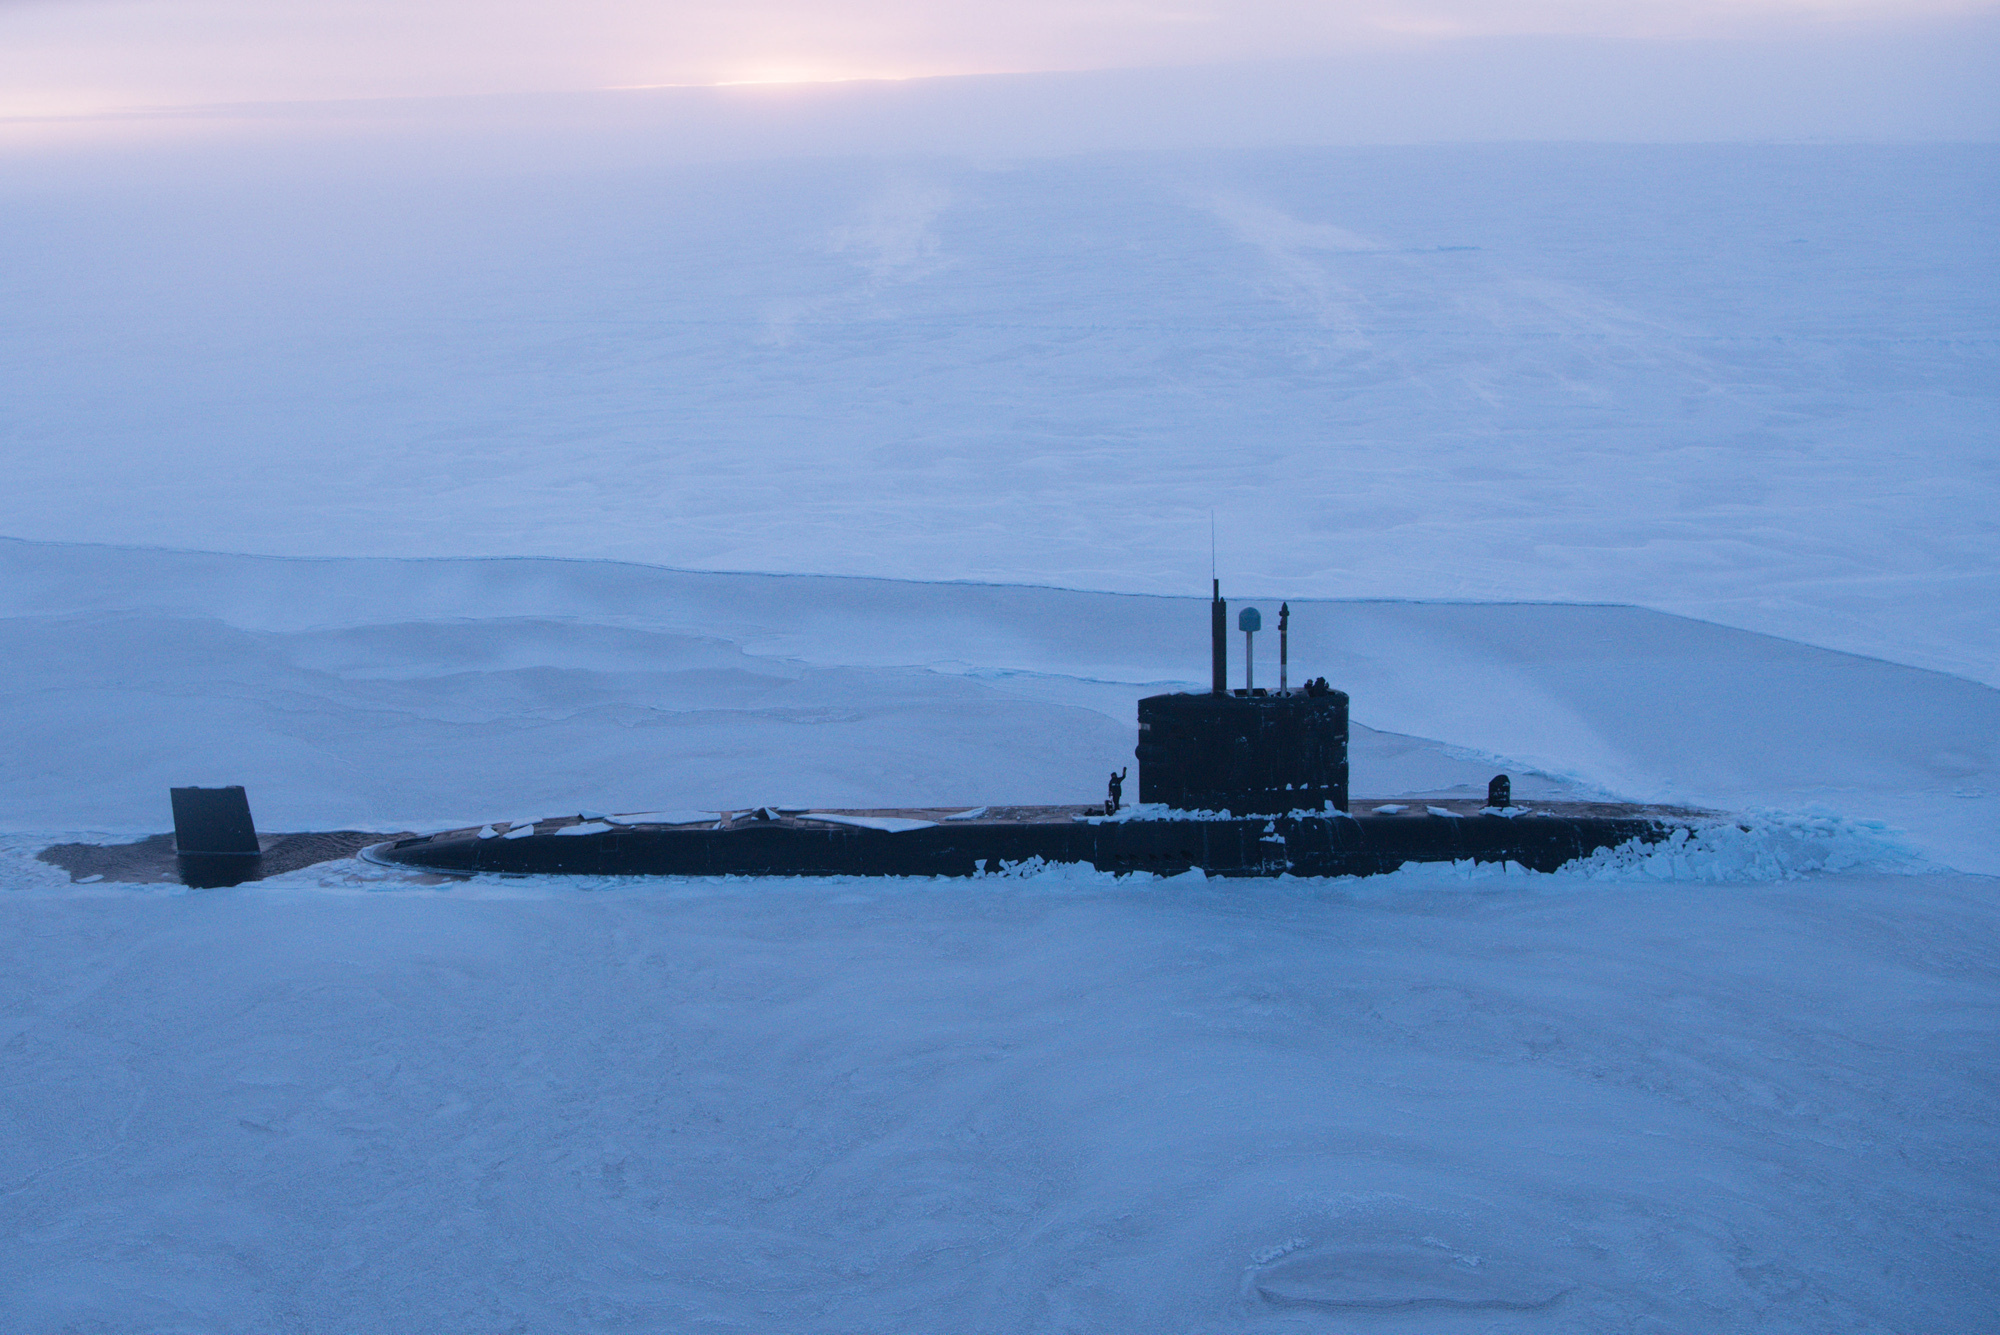 HMS Trenchant breaking through the metre-thick ice of the Arctic Ocean (Cdr Charles Ball/Royal Navy/PA Wire)